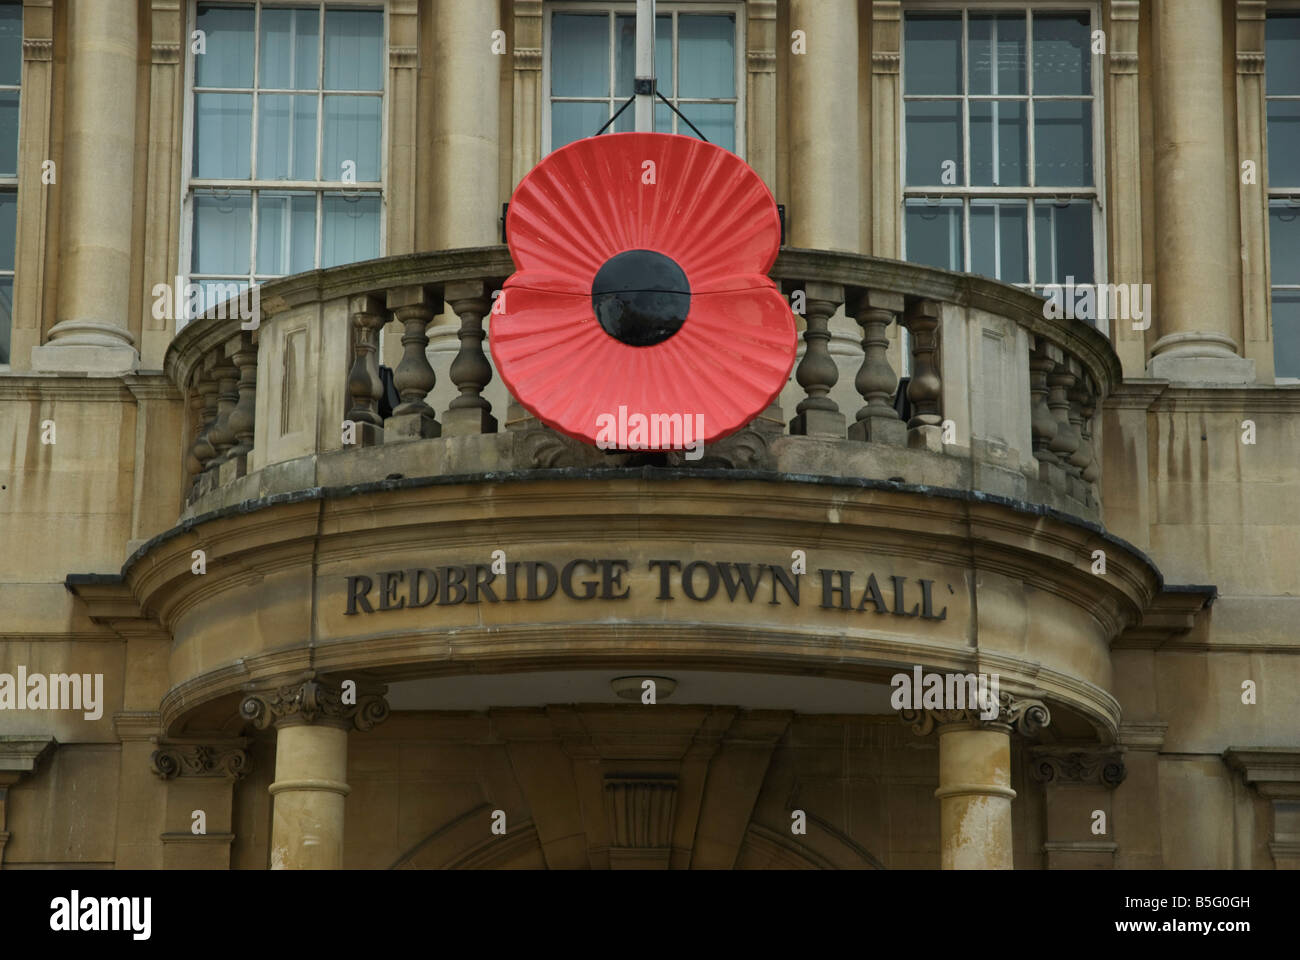 Redbridge Town Hall, Ilford Essex with large poppy - Stock Image